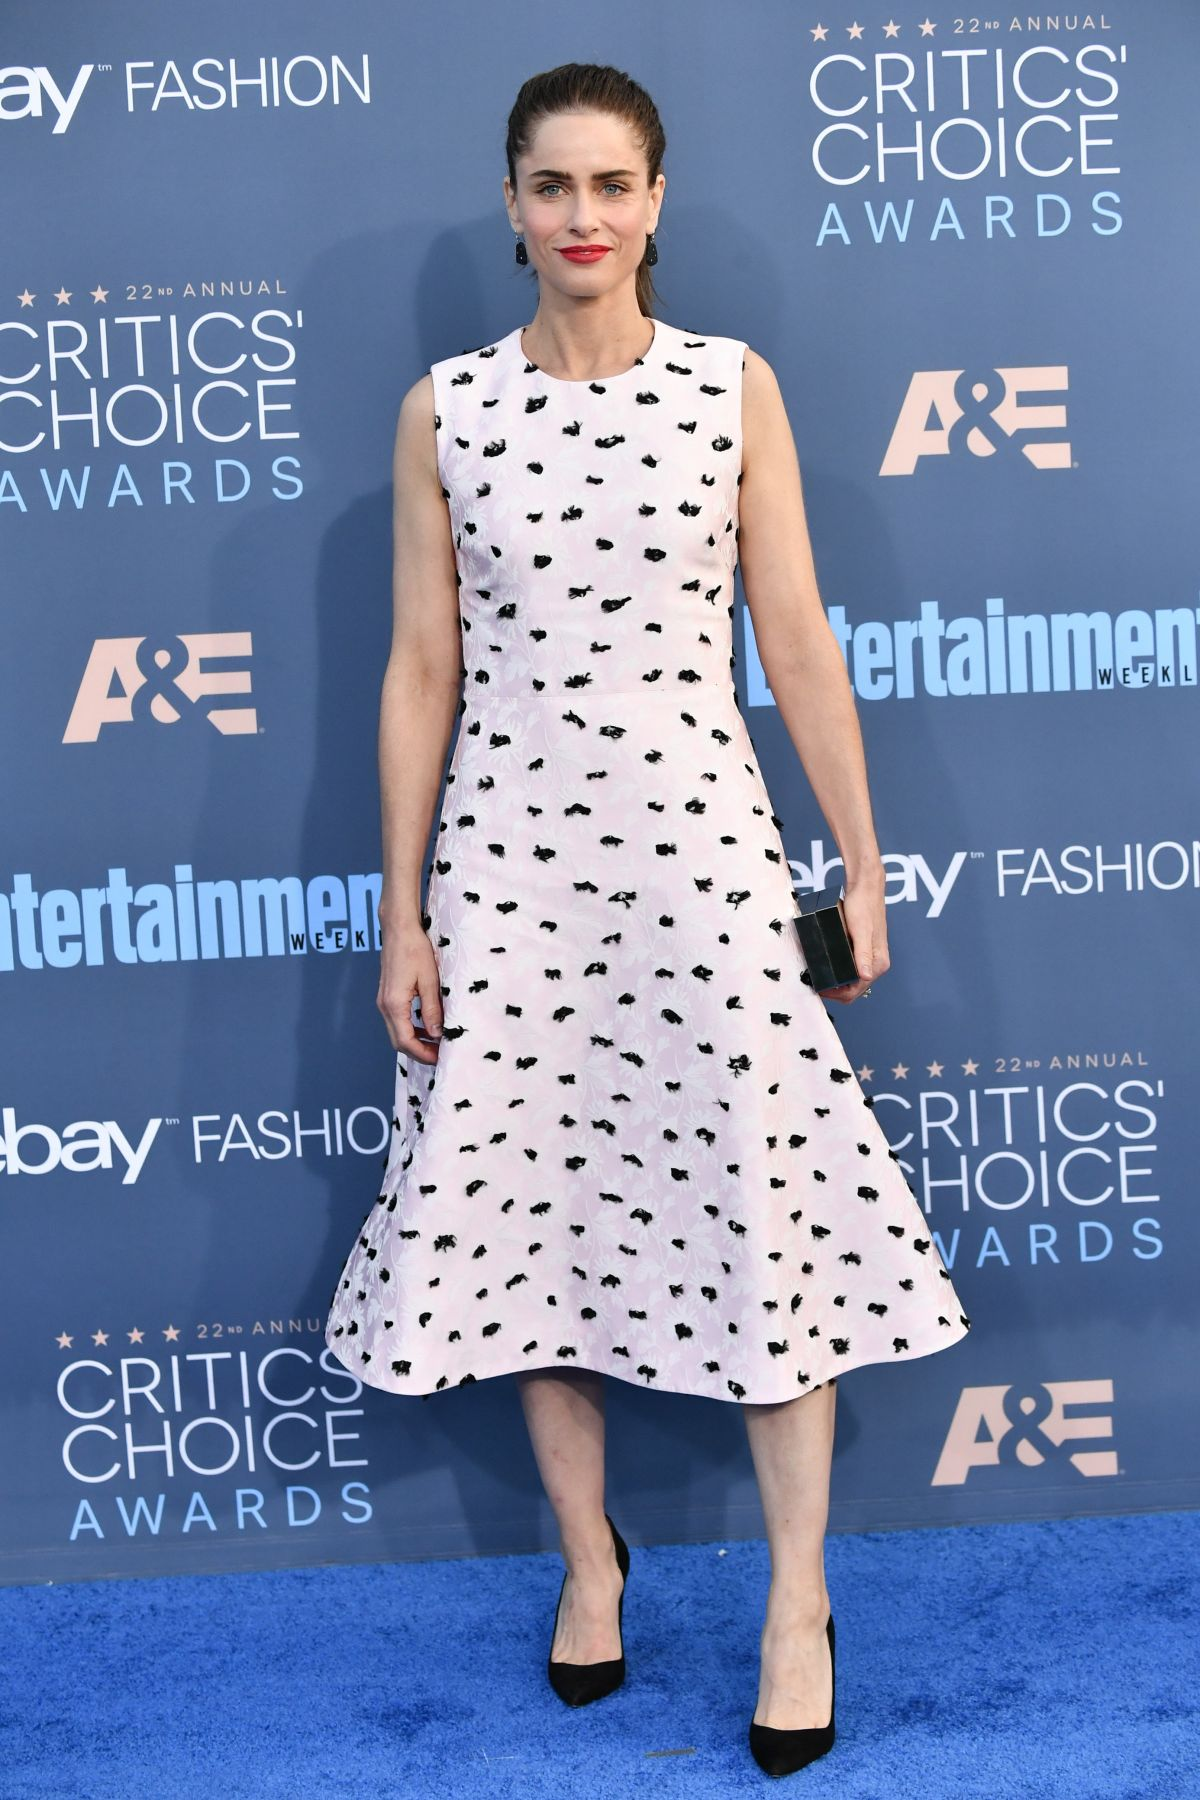 Amanda Peet At The 22nd Annual Critics' Choice Awards in Santa Monica   amanda-peet-at-the-22nd-annual-critics-choice-awards-in-santa-monica-_10